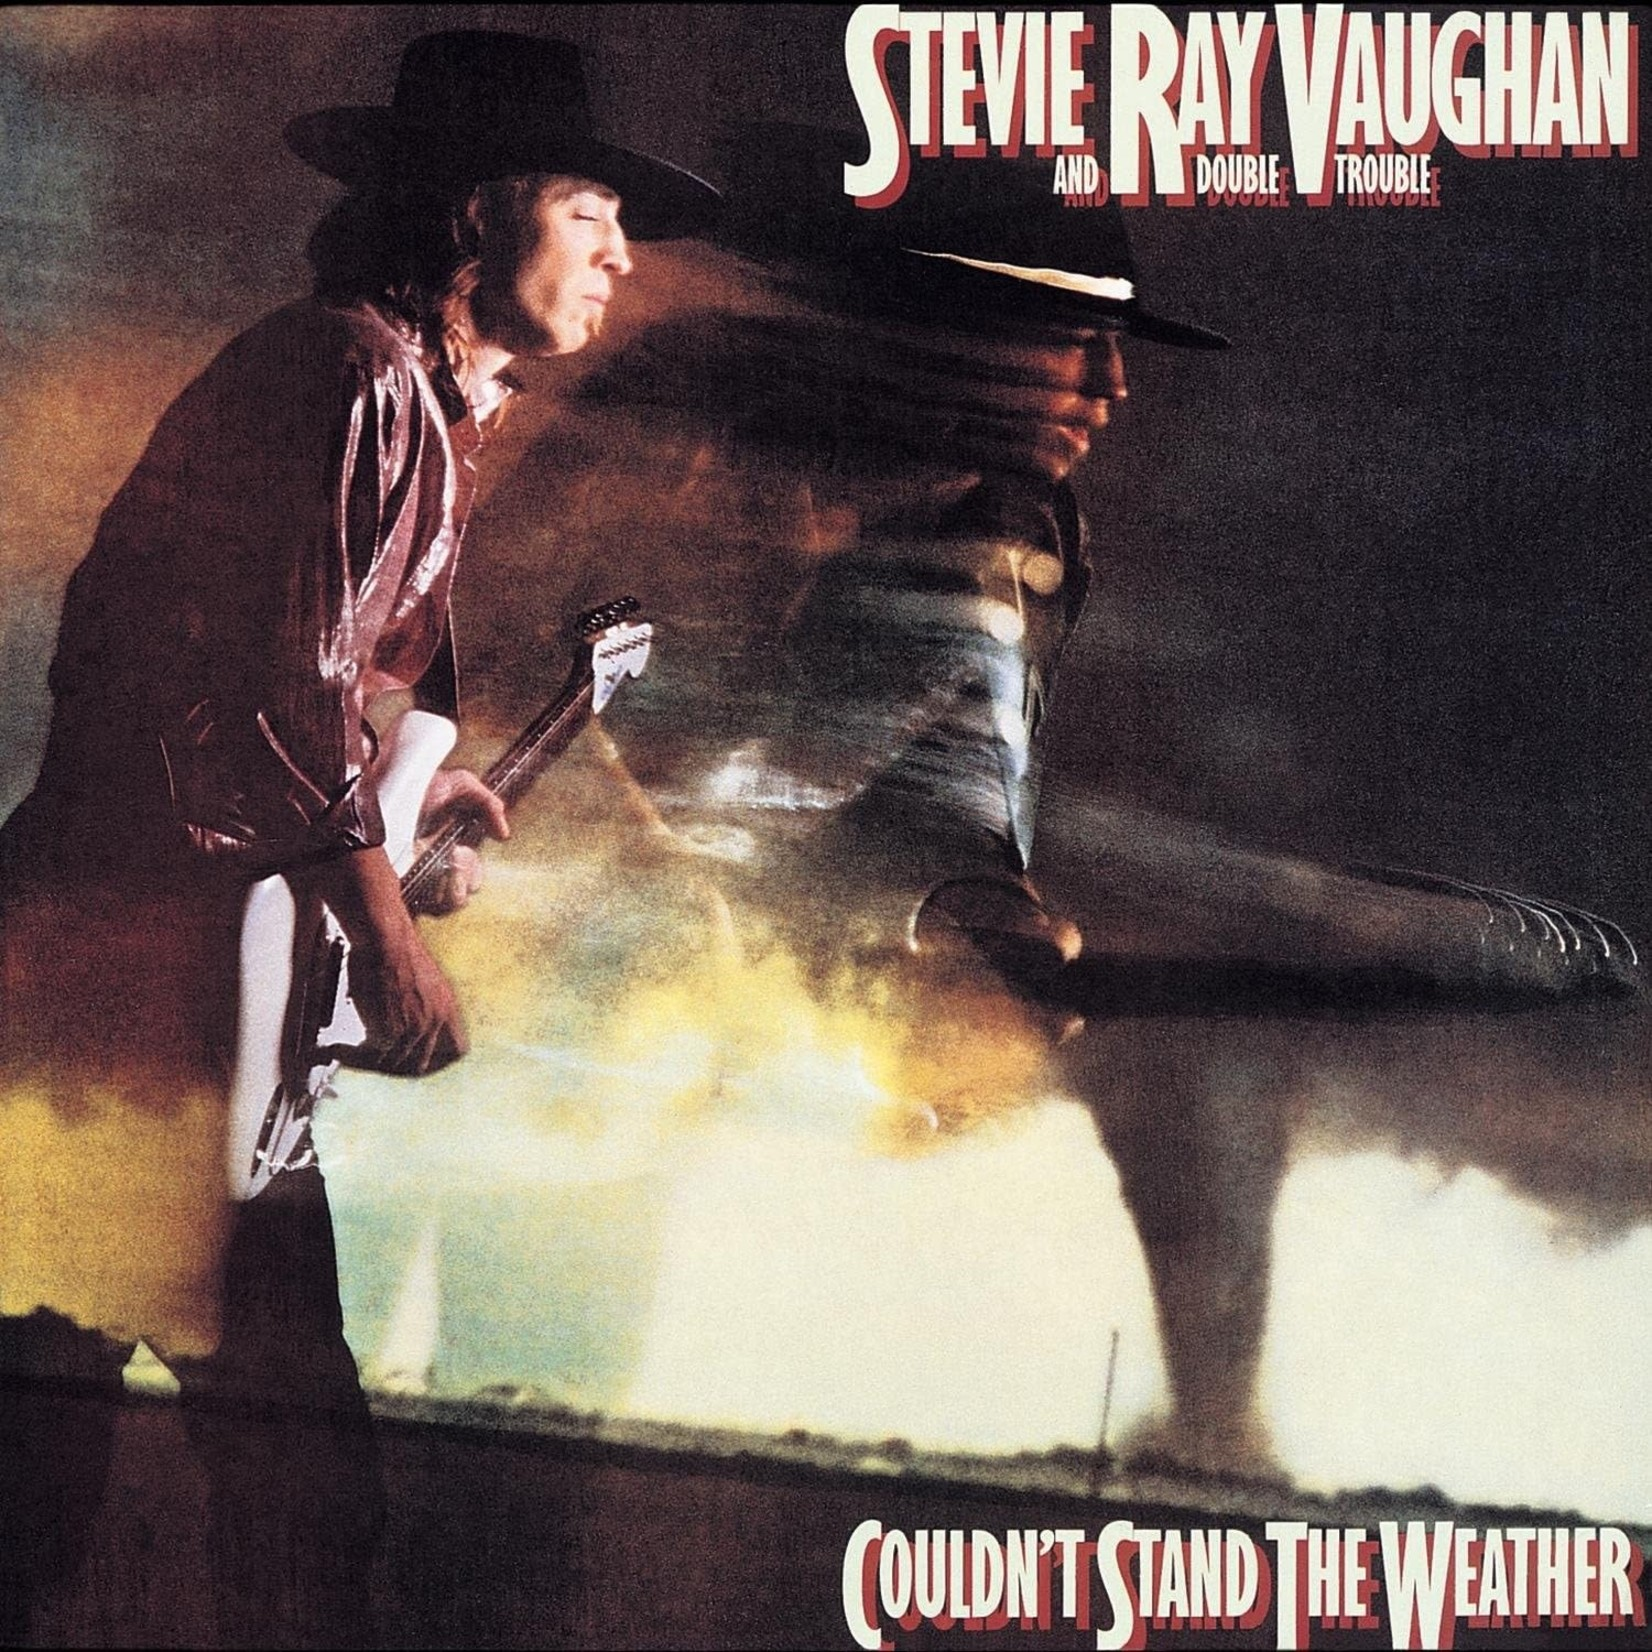 [Vintage] Vaughan, Stevie Ray: Couldn't Stand the Weather